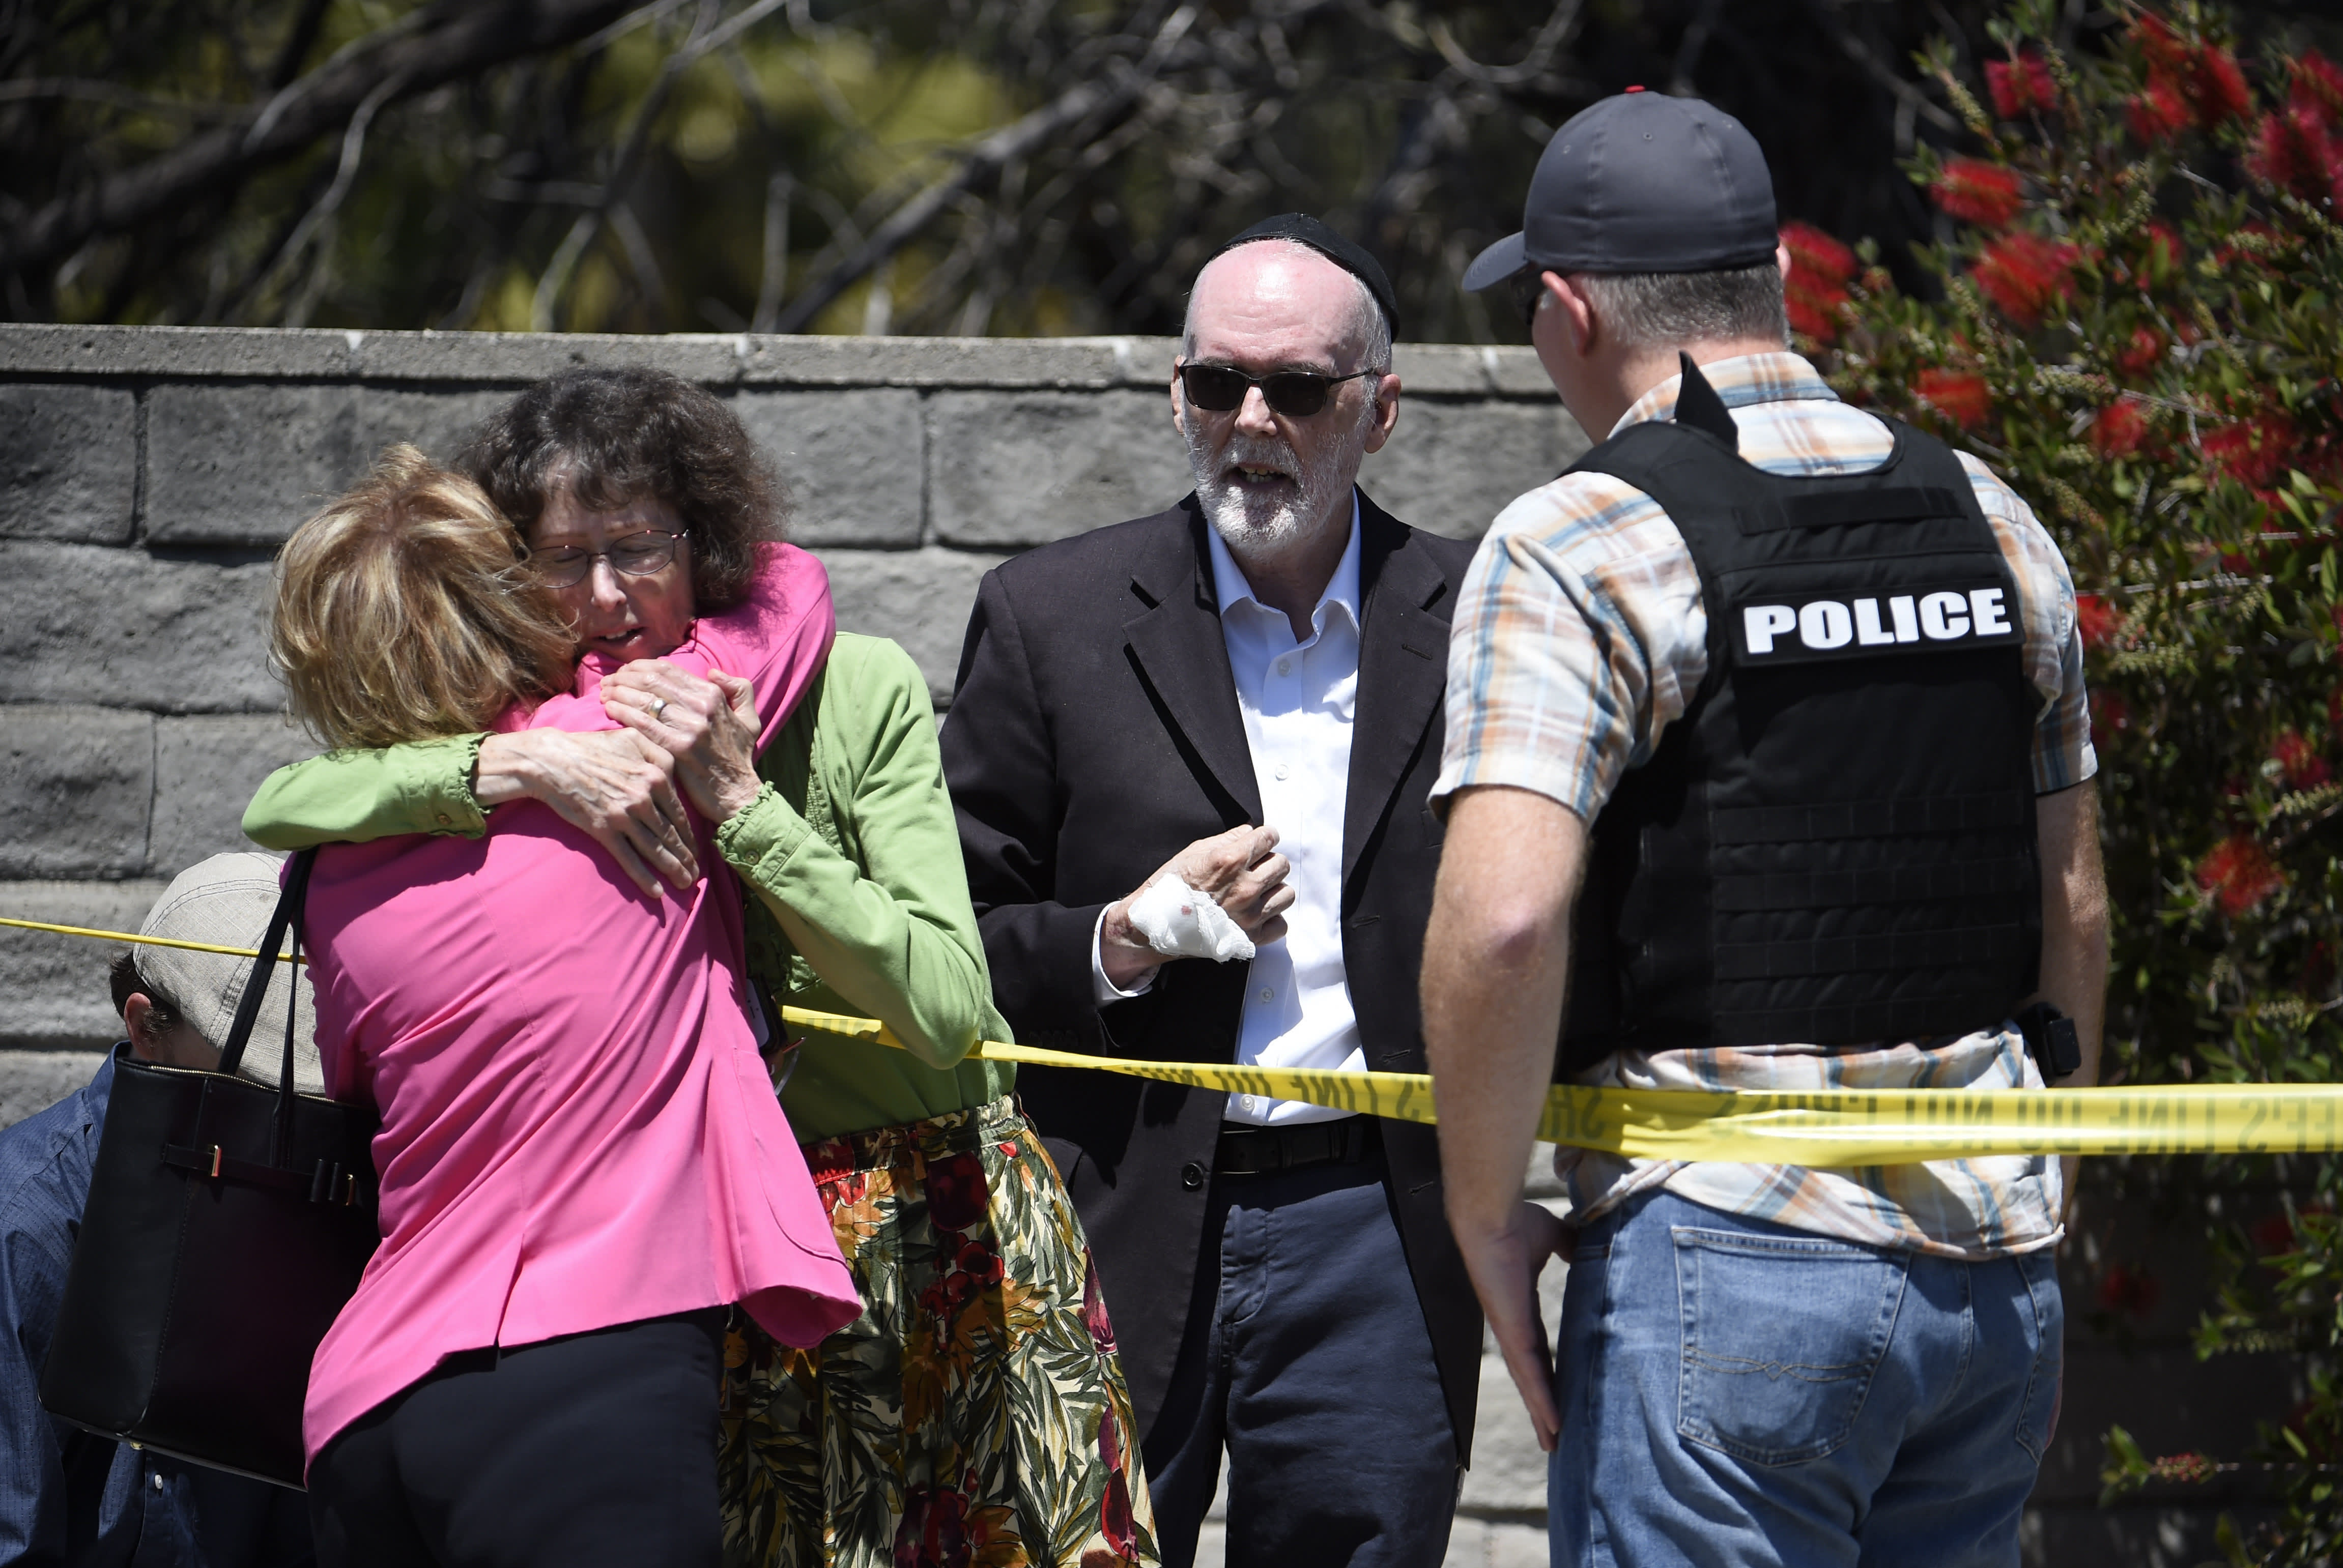 'It was a hate crime': One dead, three injured in synagogue shooting in San Diego area